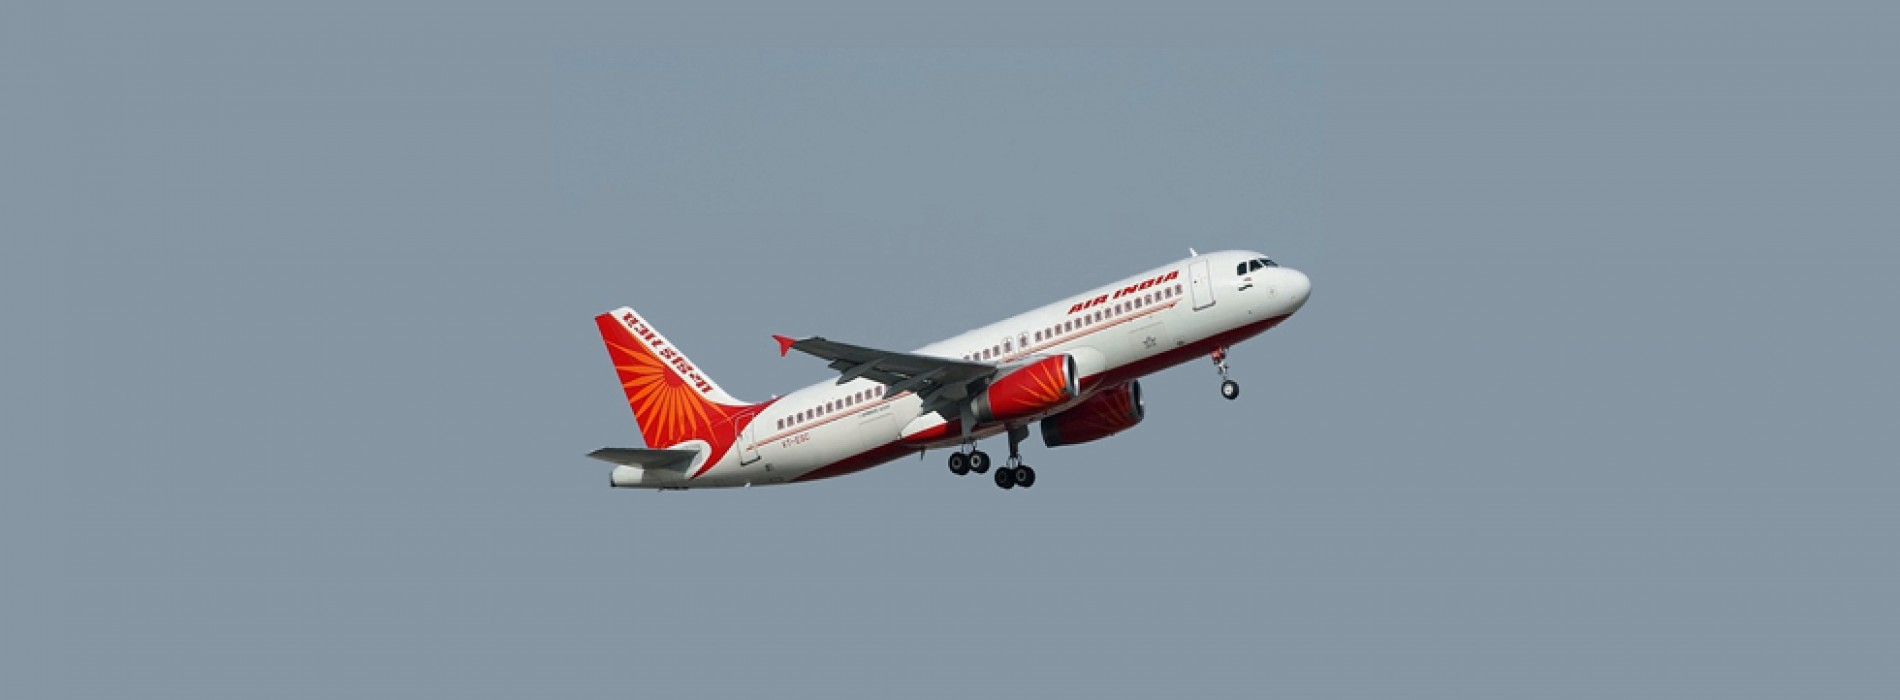 Air India ties up with banks to avail loans for 3 Boeing 777 planes